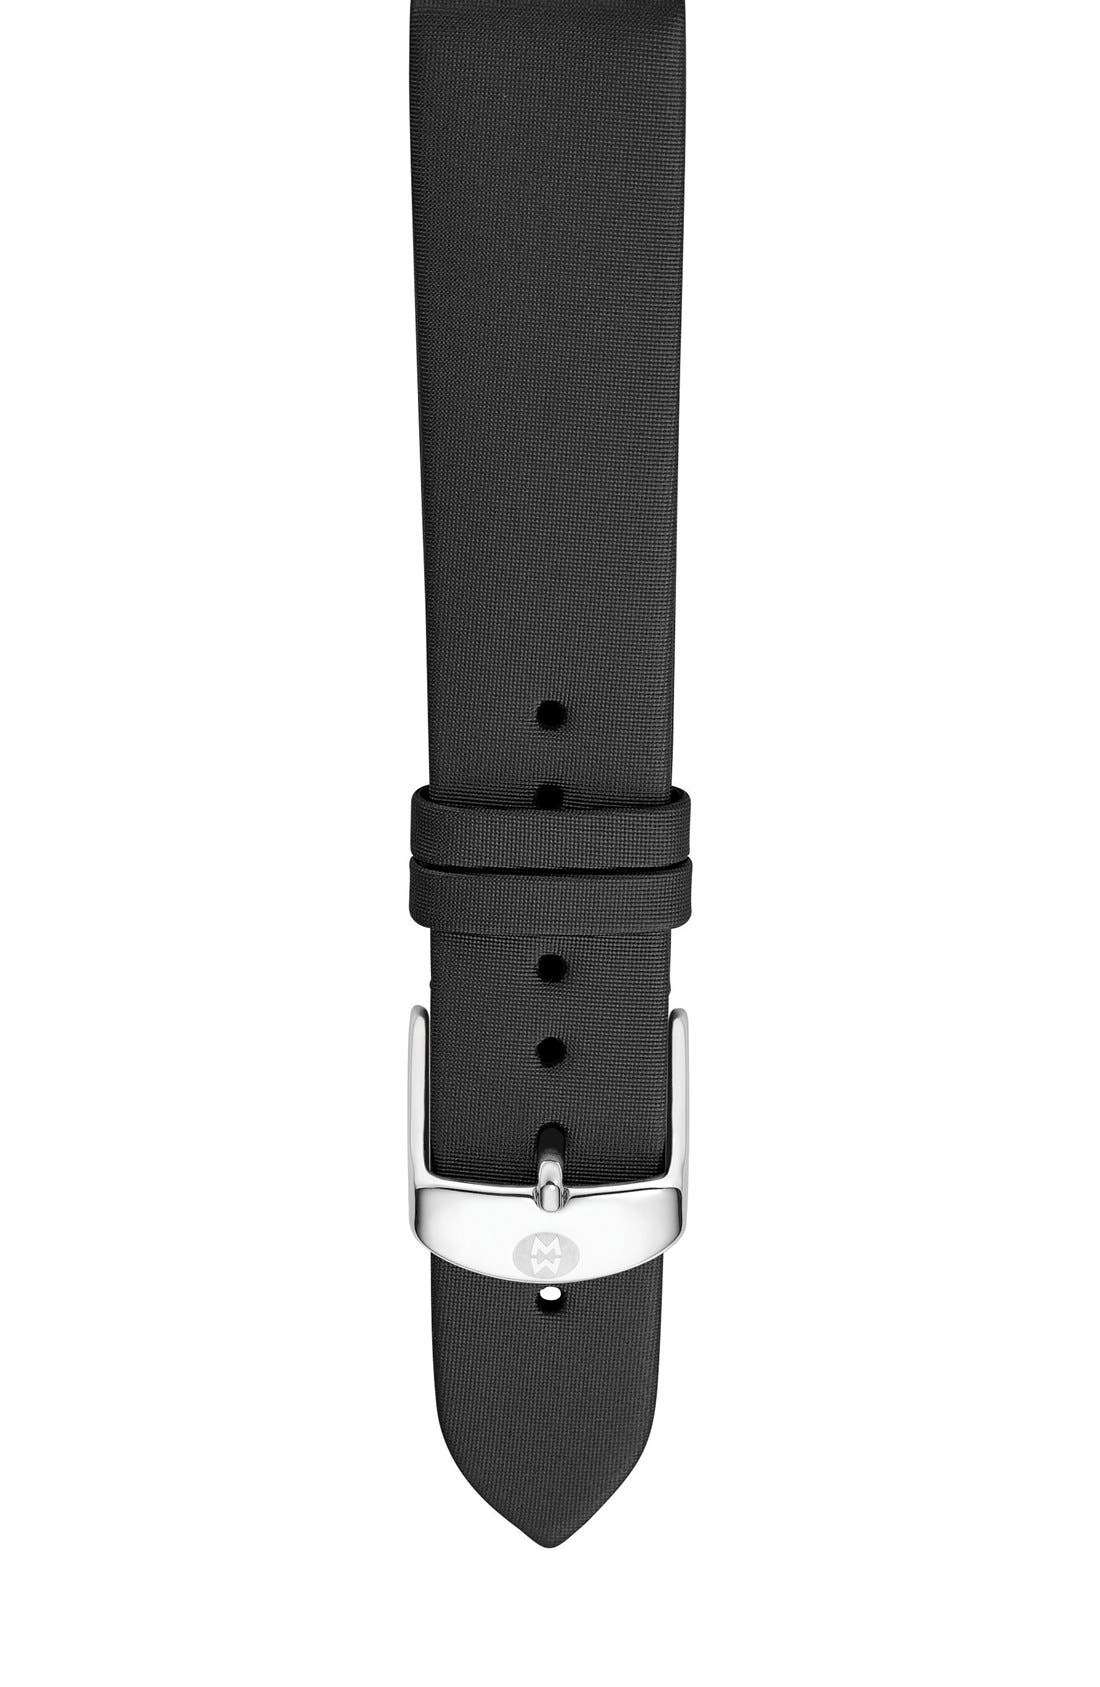 MICHELE 16mm Satin Watch Strap